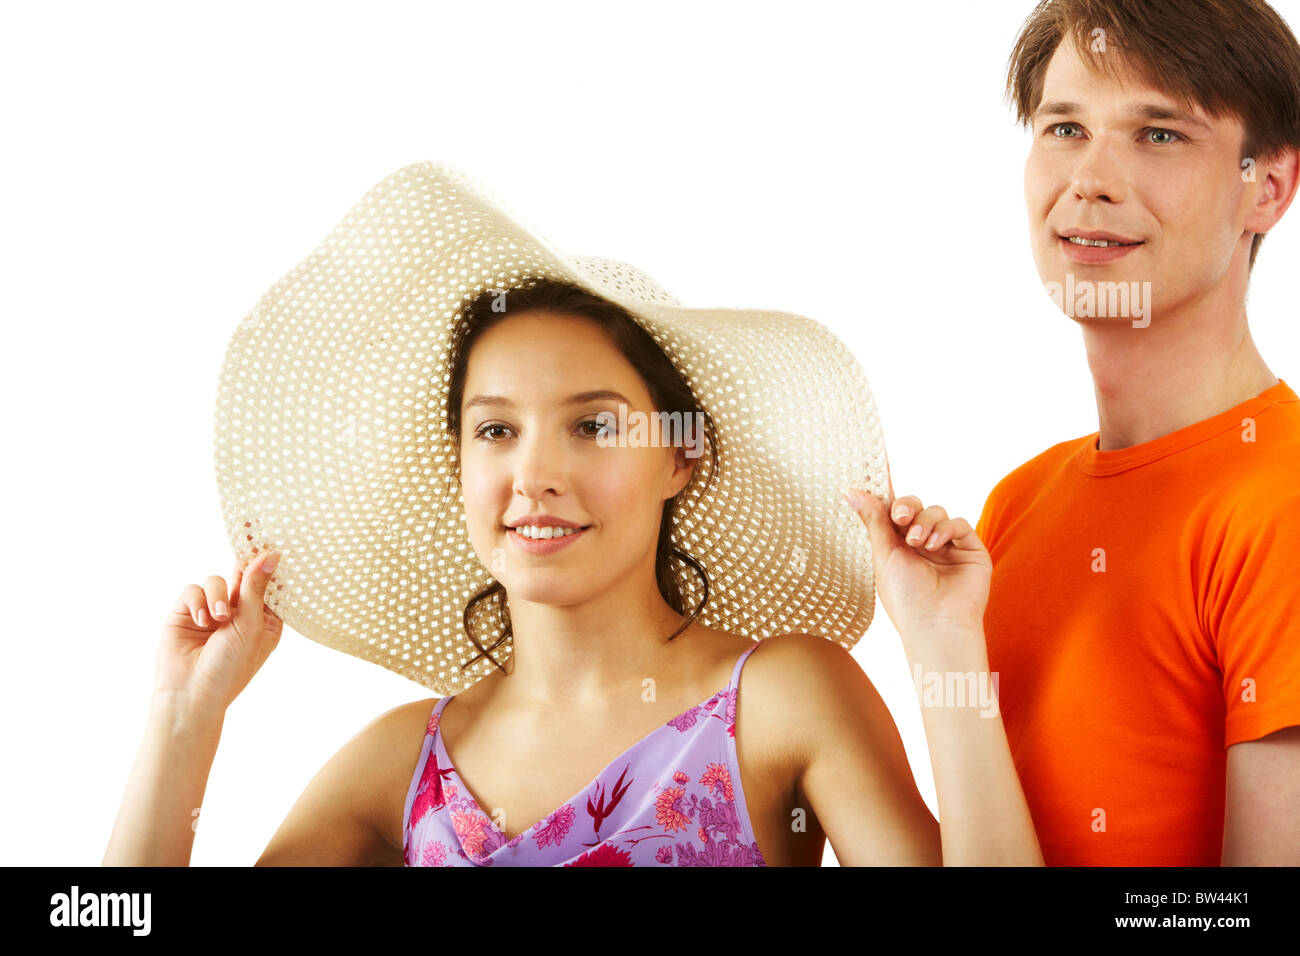 Portrait of elegant girl in hat with handsome man near by on white background Stock Photo